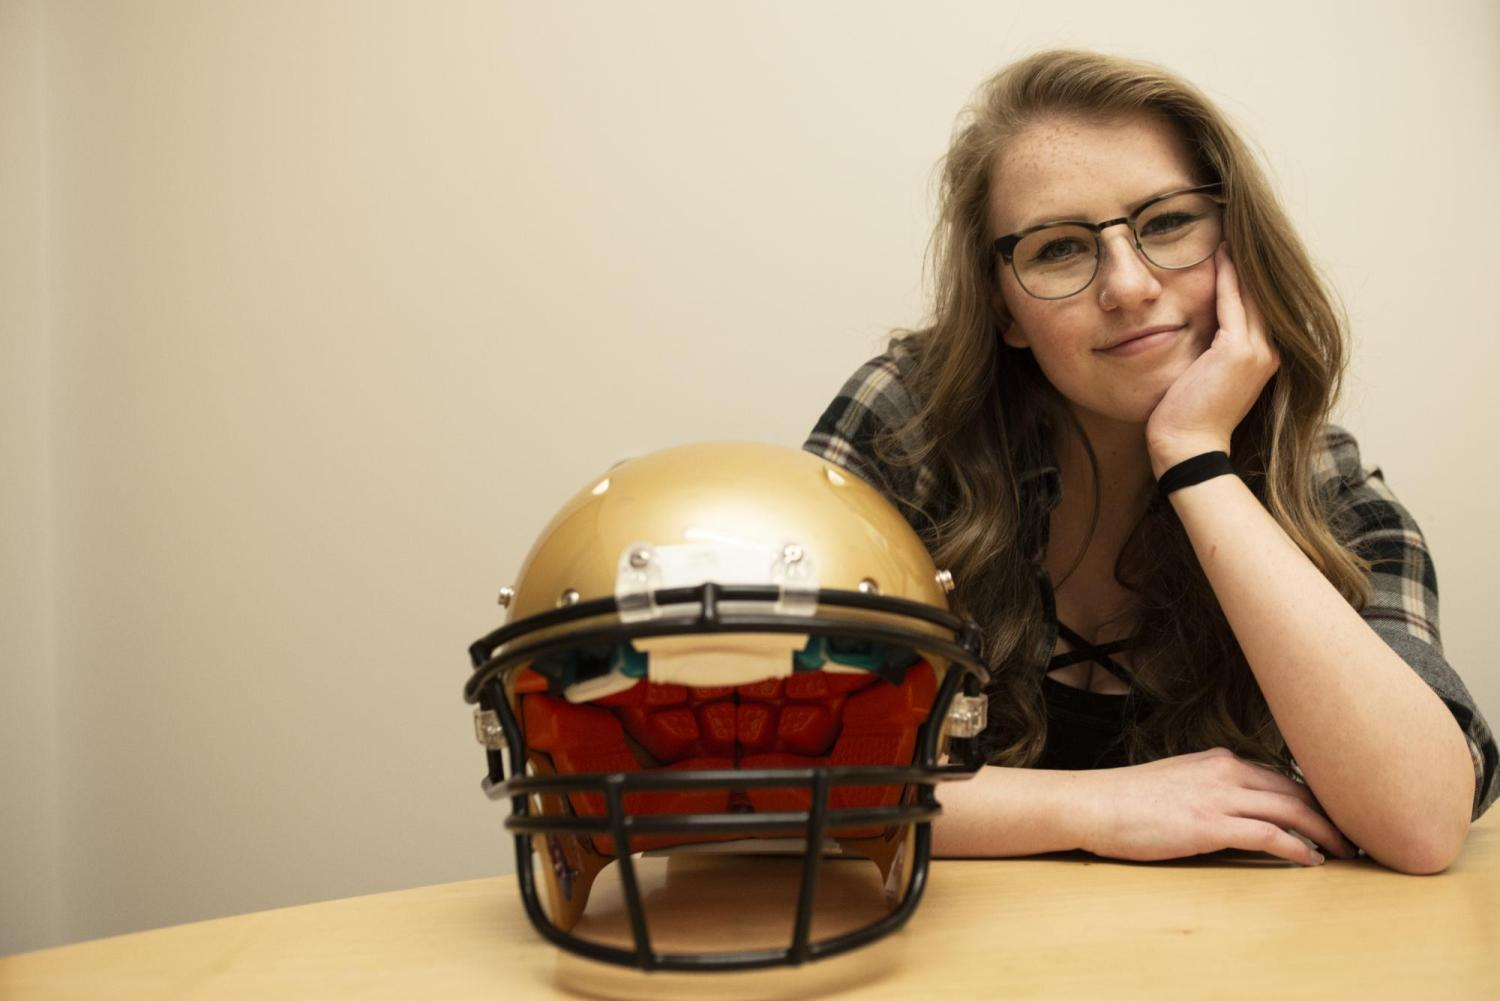 Kailey Epp sits next to a football helmet.